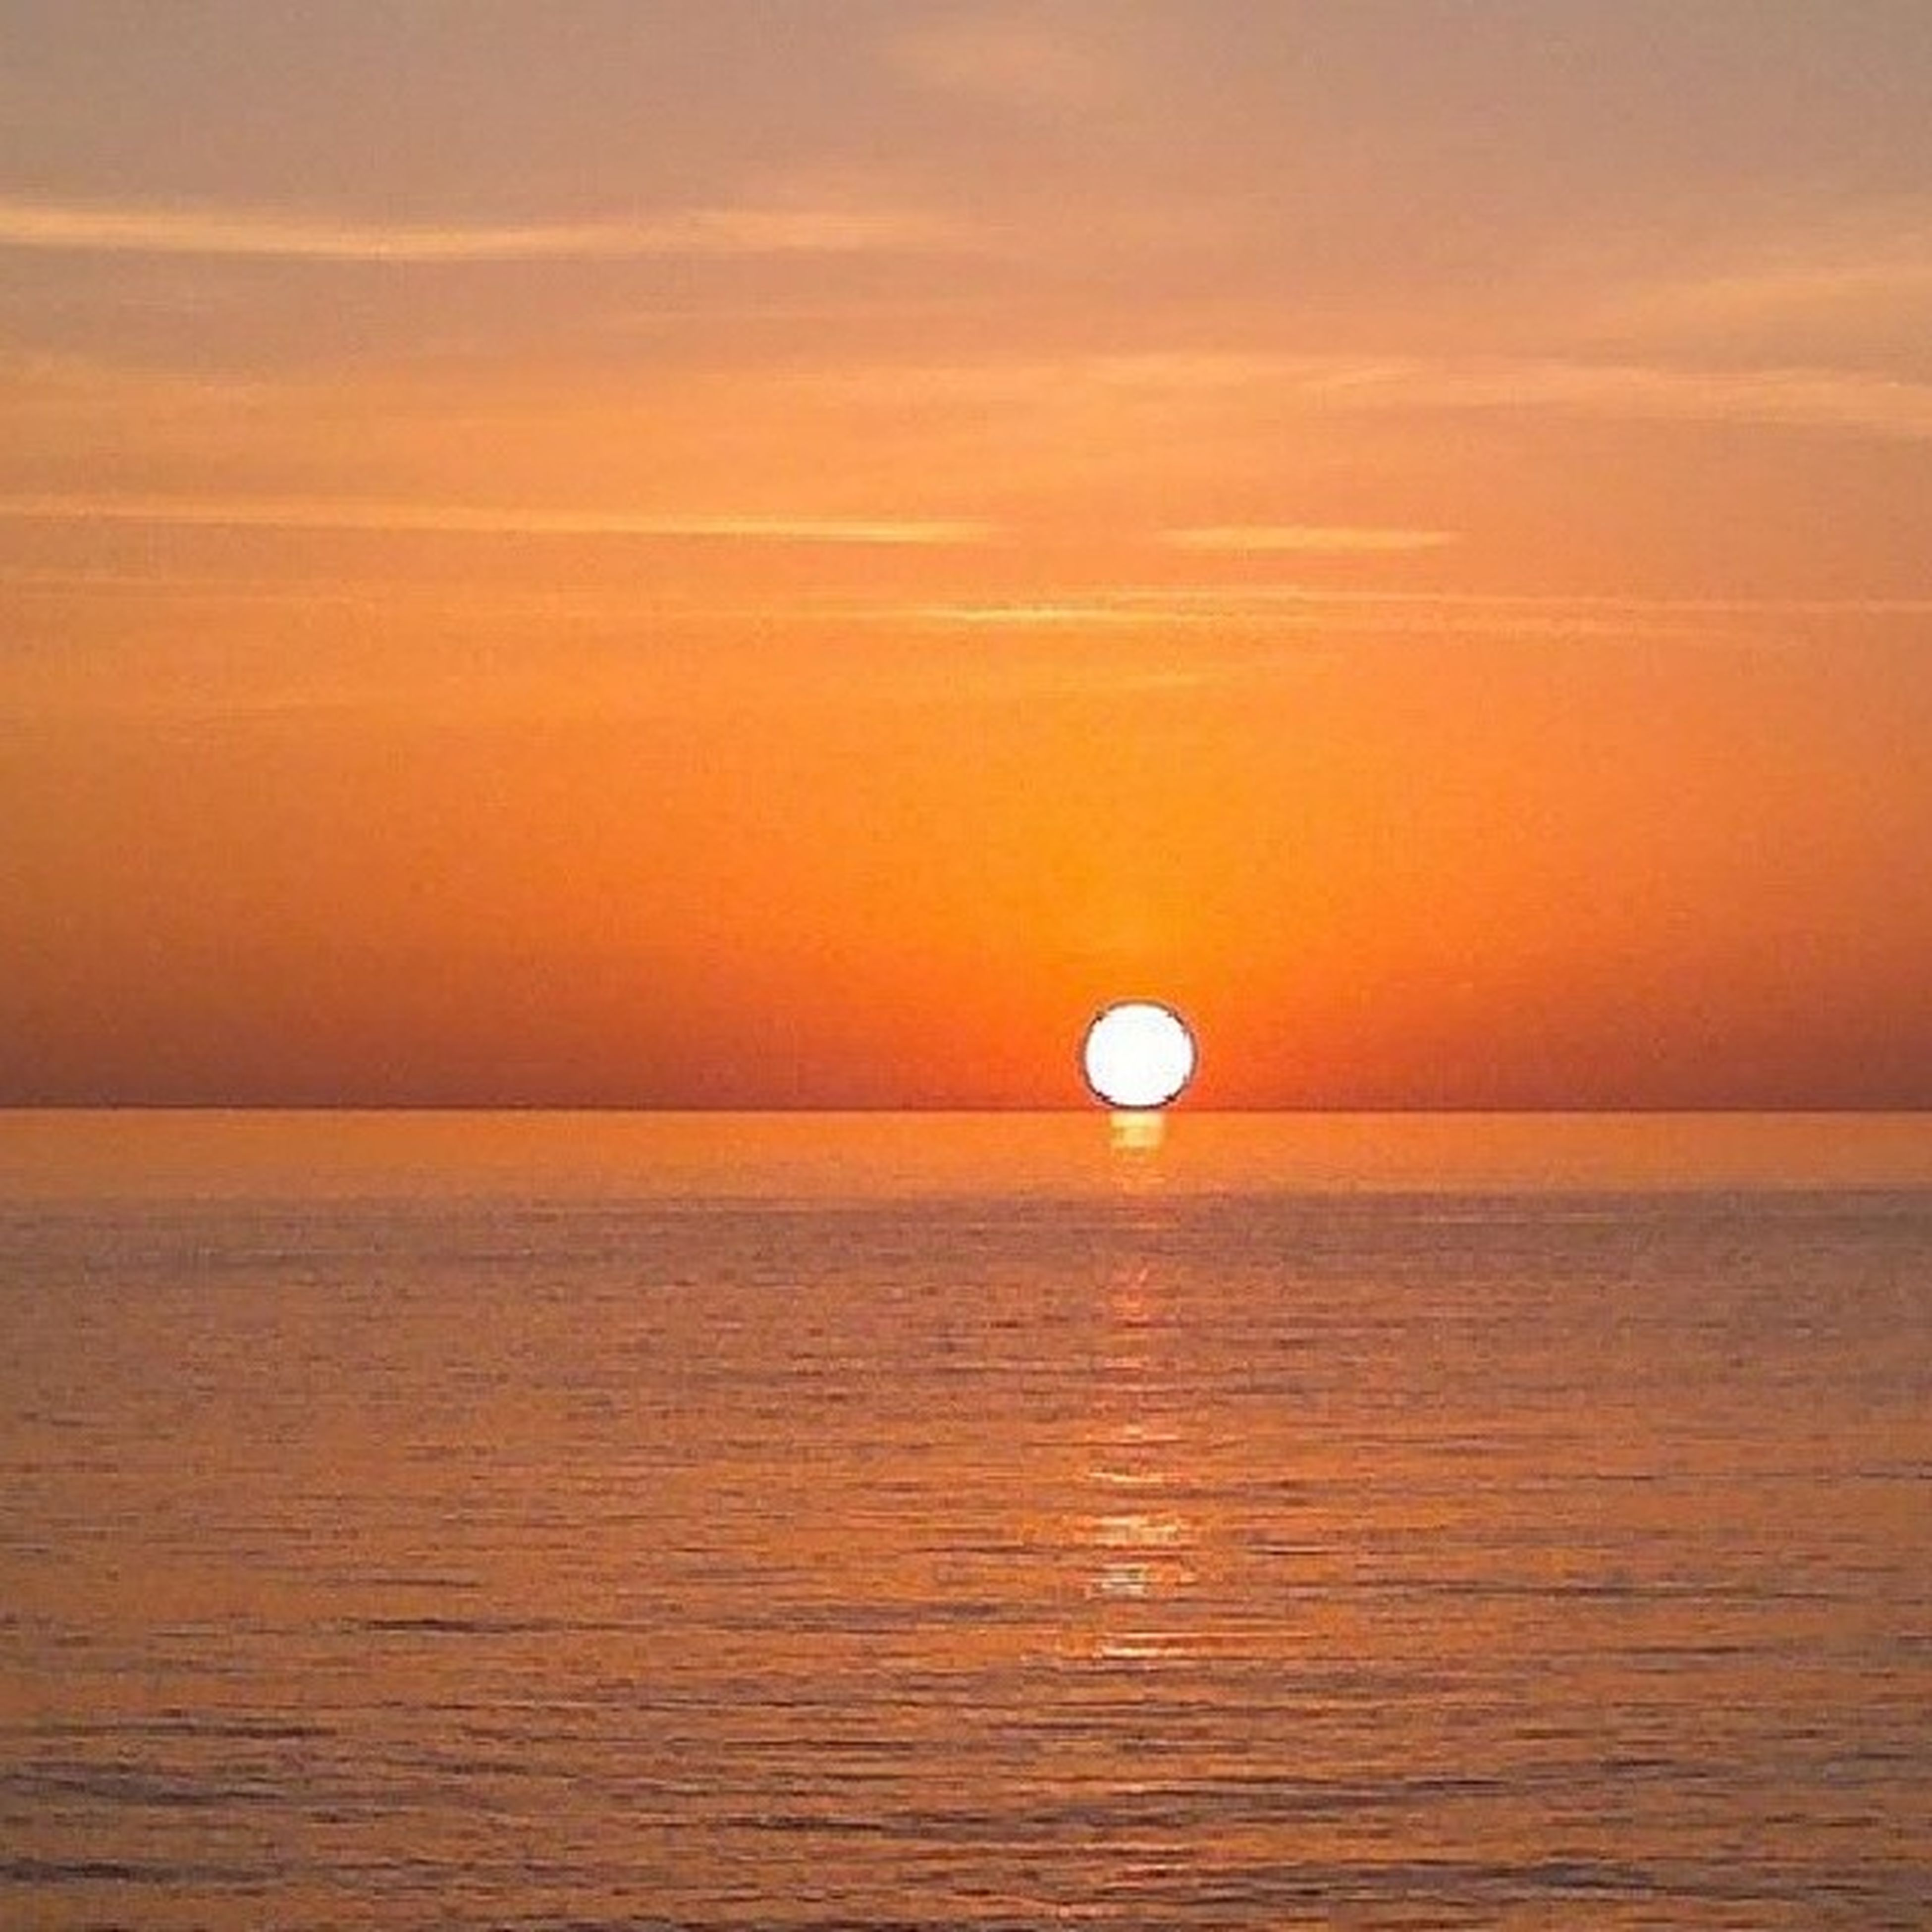 sunset, scenics, tranquil scene, sun, tranquility, orange color, beauty in nature, water, sea, horizon over water, sky, idyllic, waterfront, nature, reflection, rippled, no people, seascape, outdoors, remote